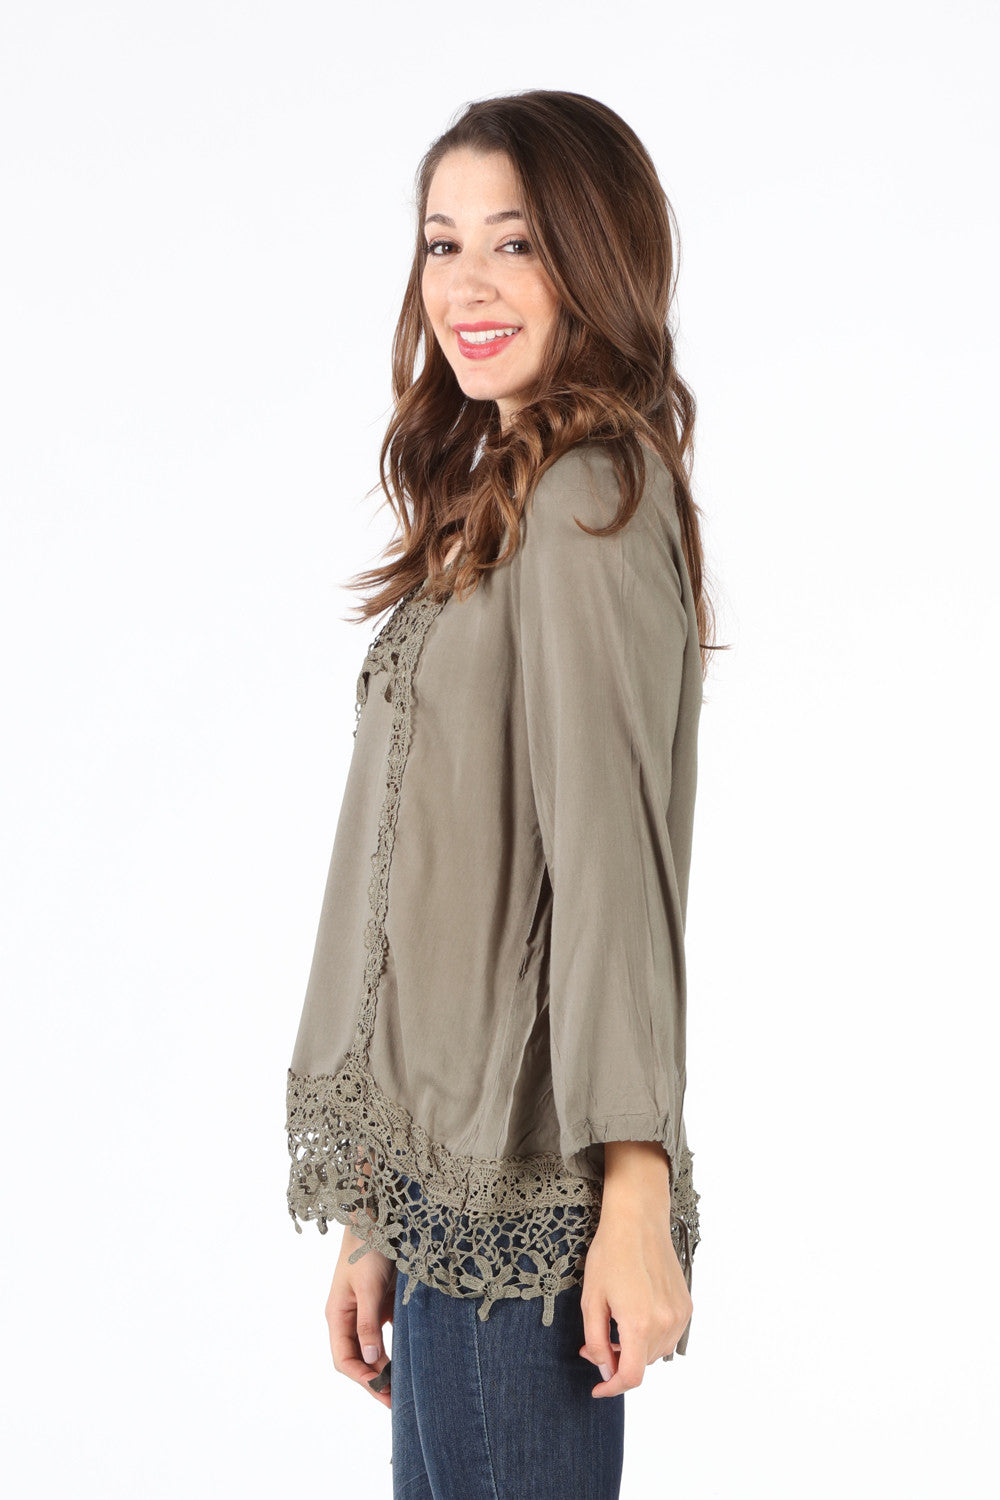 SB128 Olive Crochet Trim Blouse